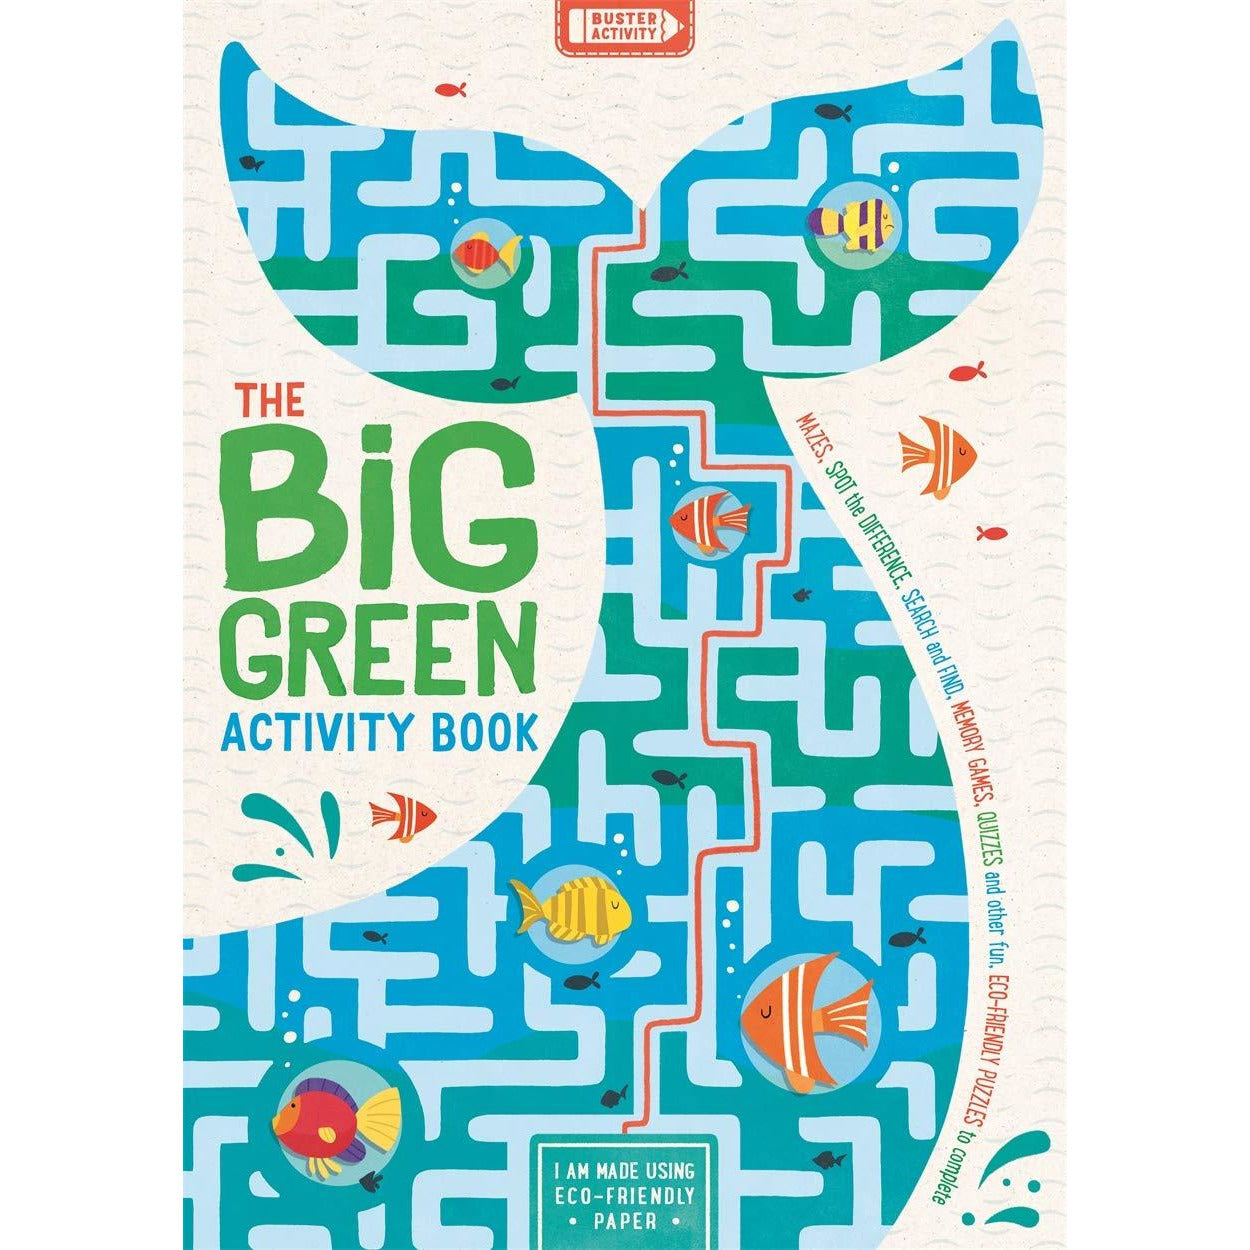 The Big Green Activity Book - Beautykind